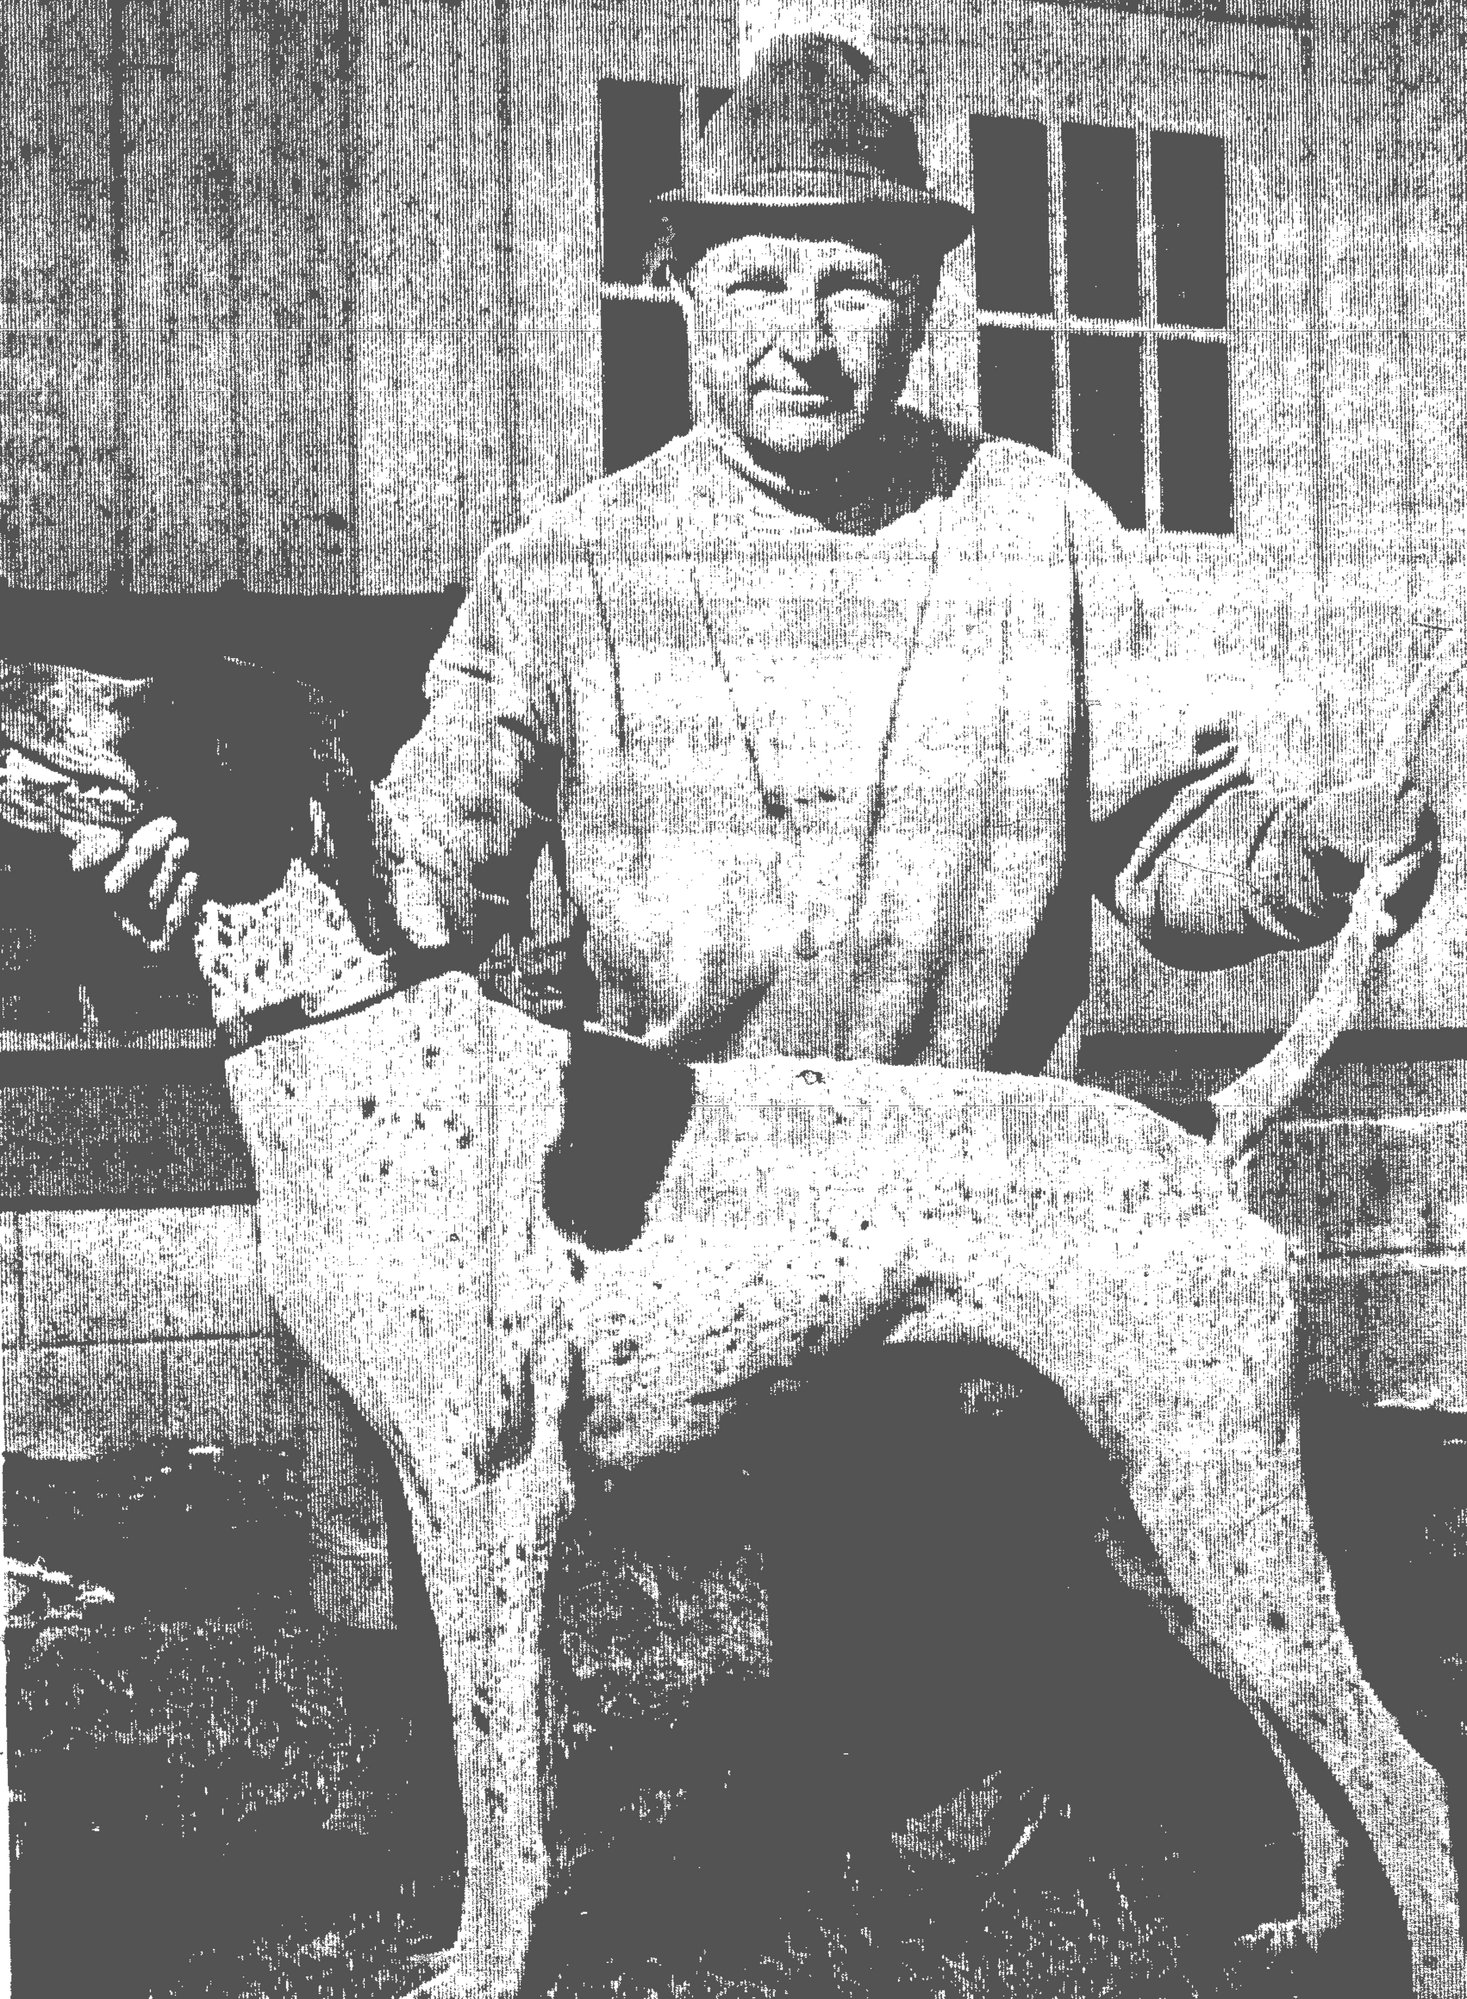 1968 - Wateree, a 4-year-old liver-and-white male pointer, handled and trained locally by his owner, W. C. Chaney, won the Regional Three Amateur All-Age Championship in Pinehurst, North Carolina. An entry of 26 dogs competed from various states in the Southeast. This is the dog's first title, and now he has about 23 wins.